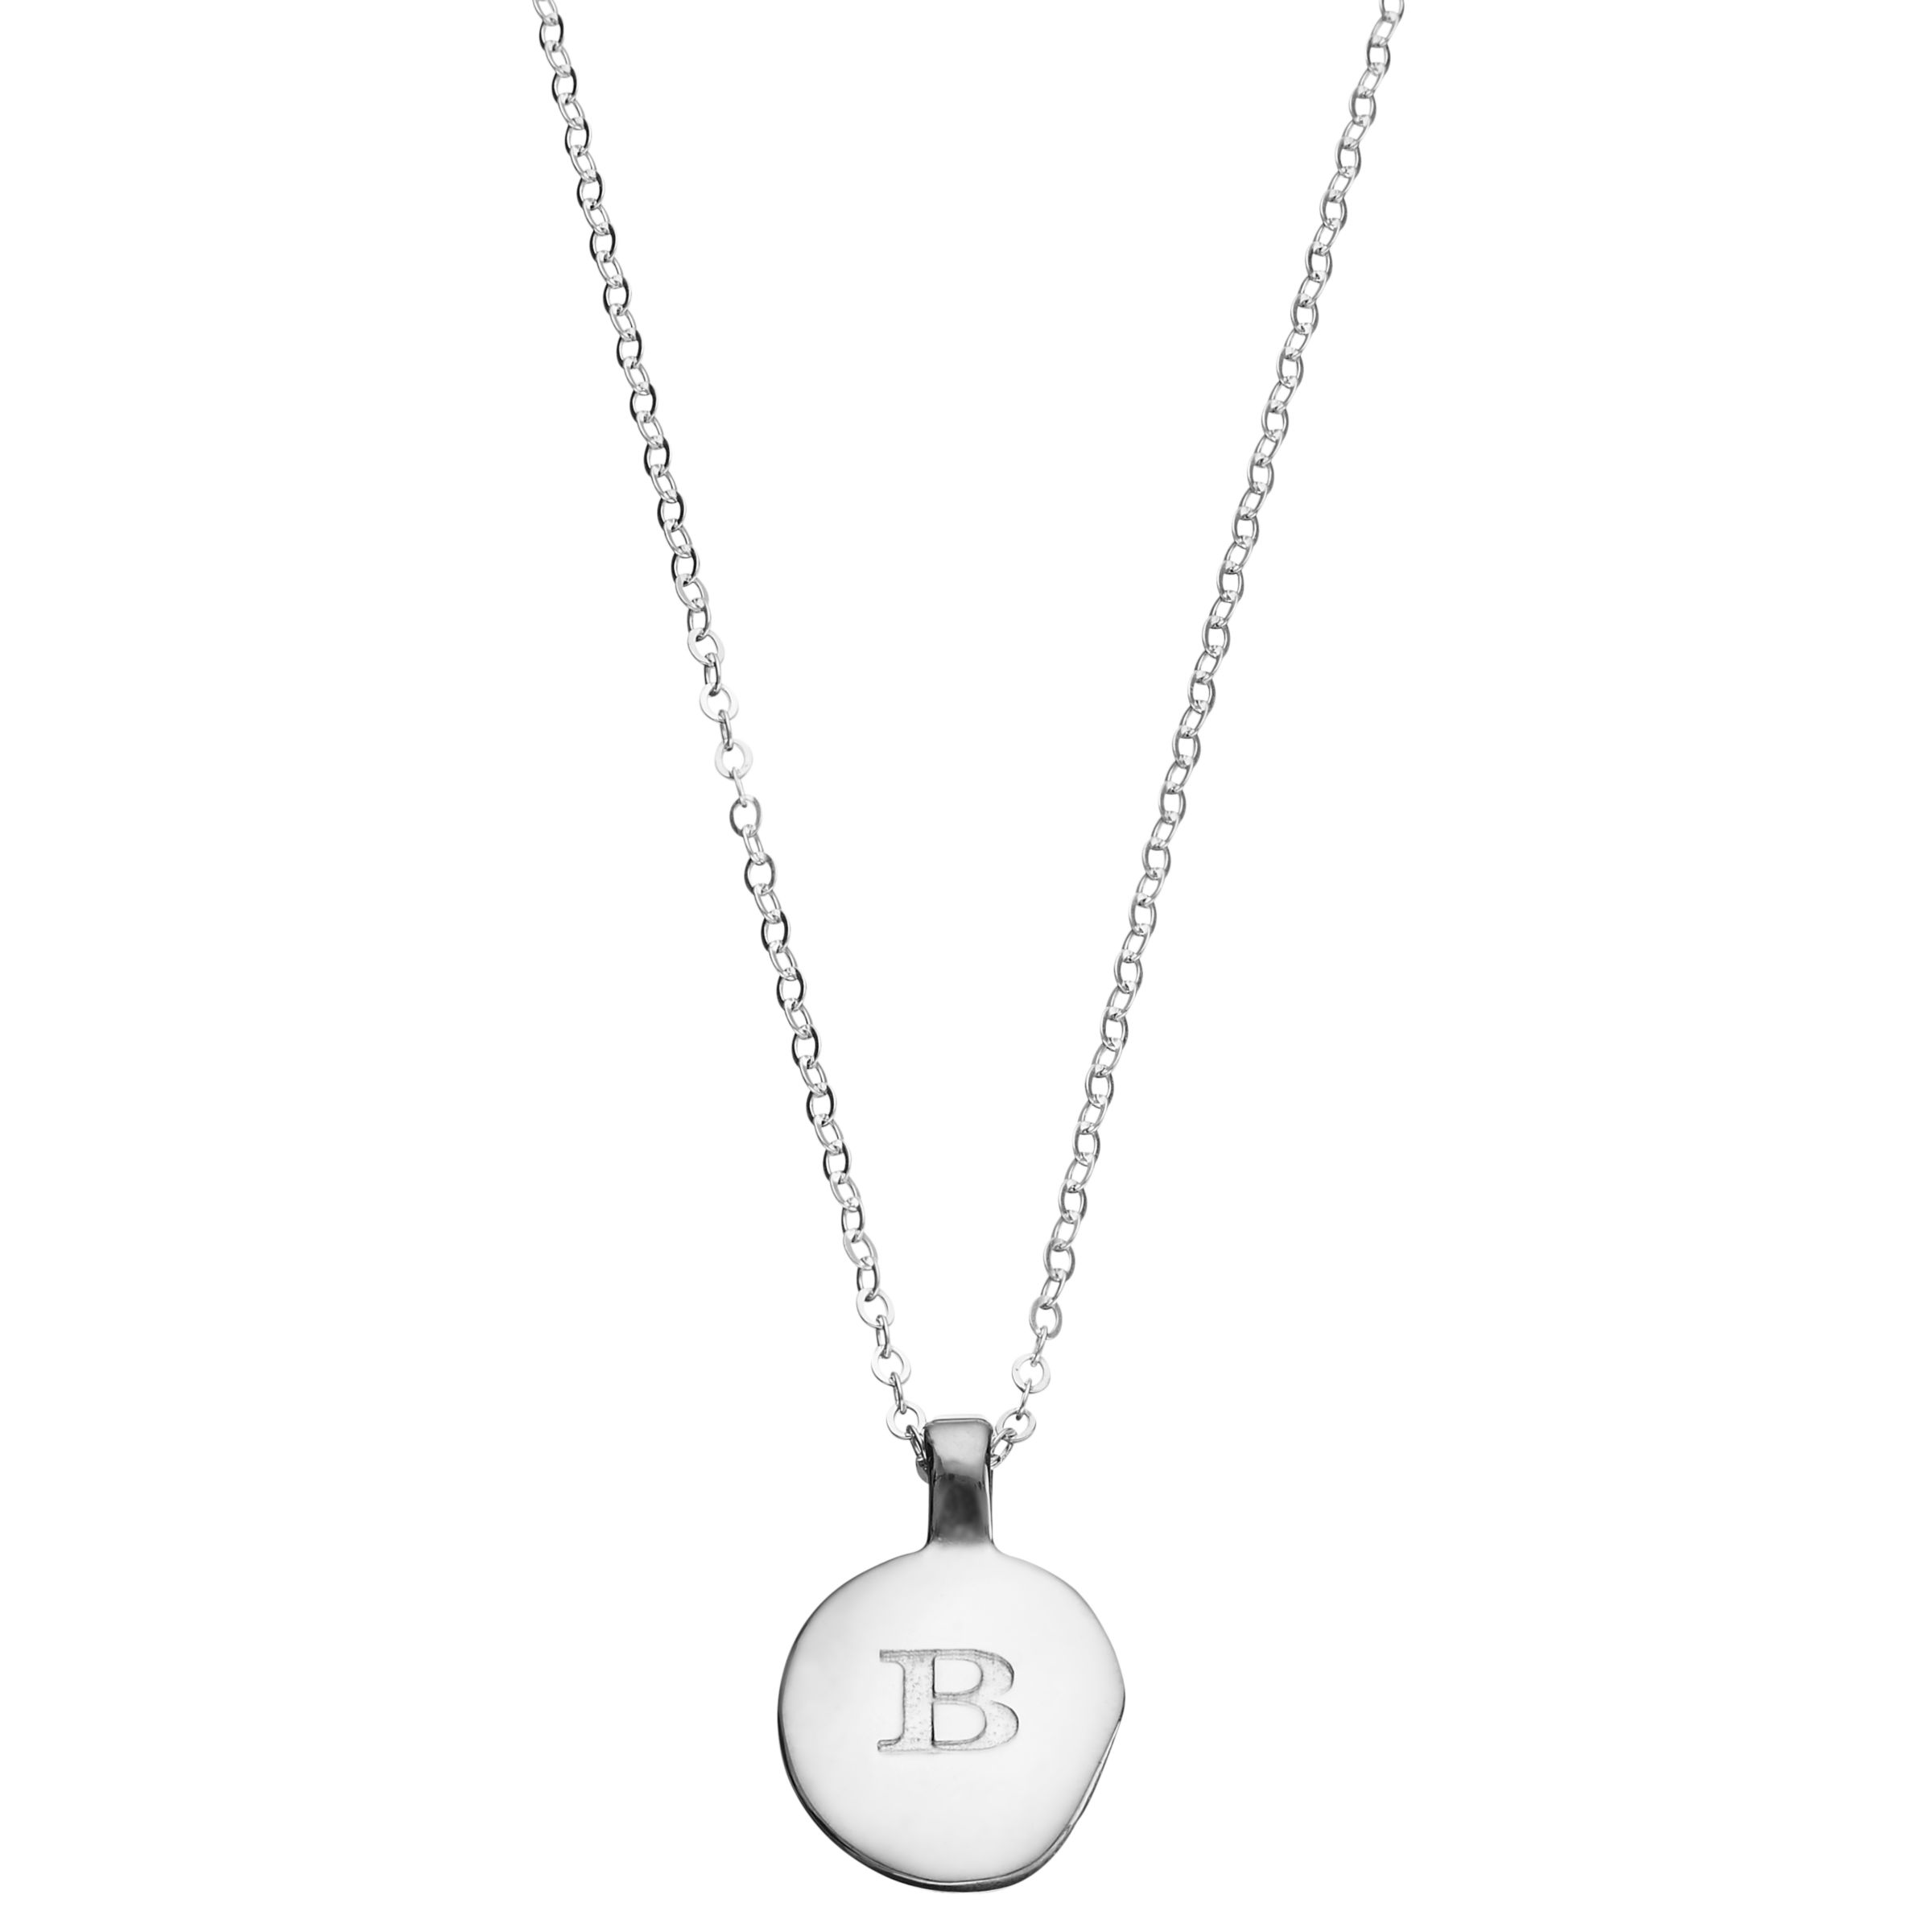 Under The Rose Under the Rose Personalised Initial Necklace